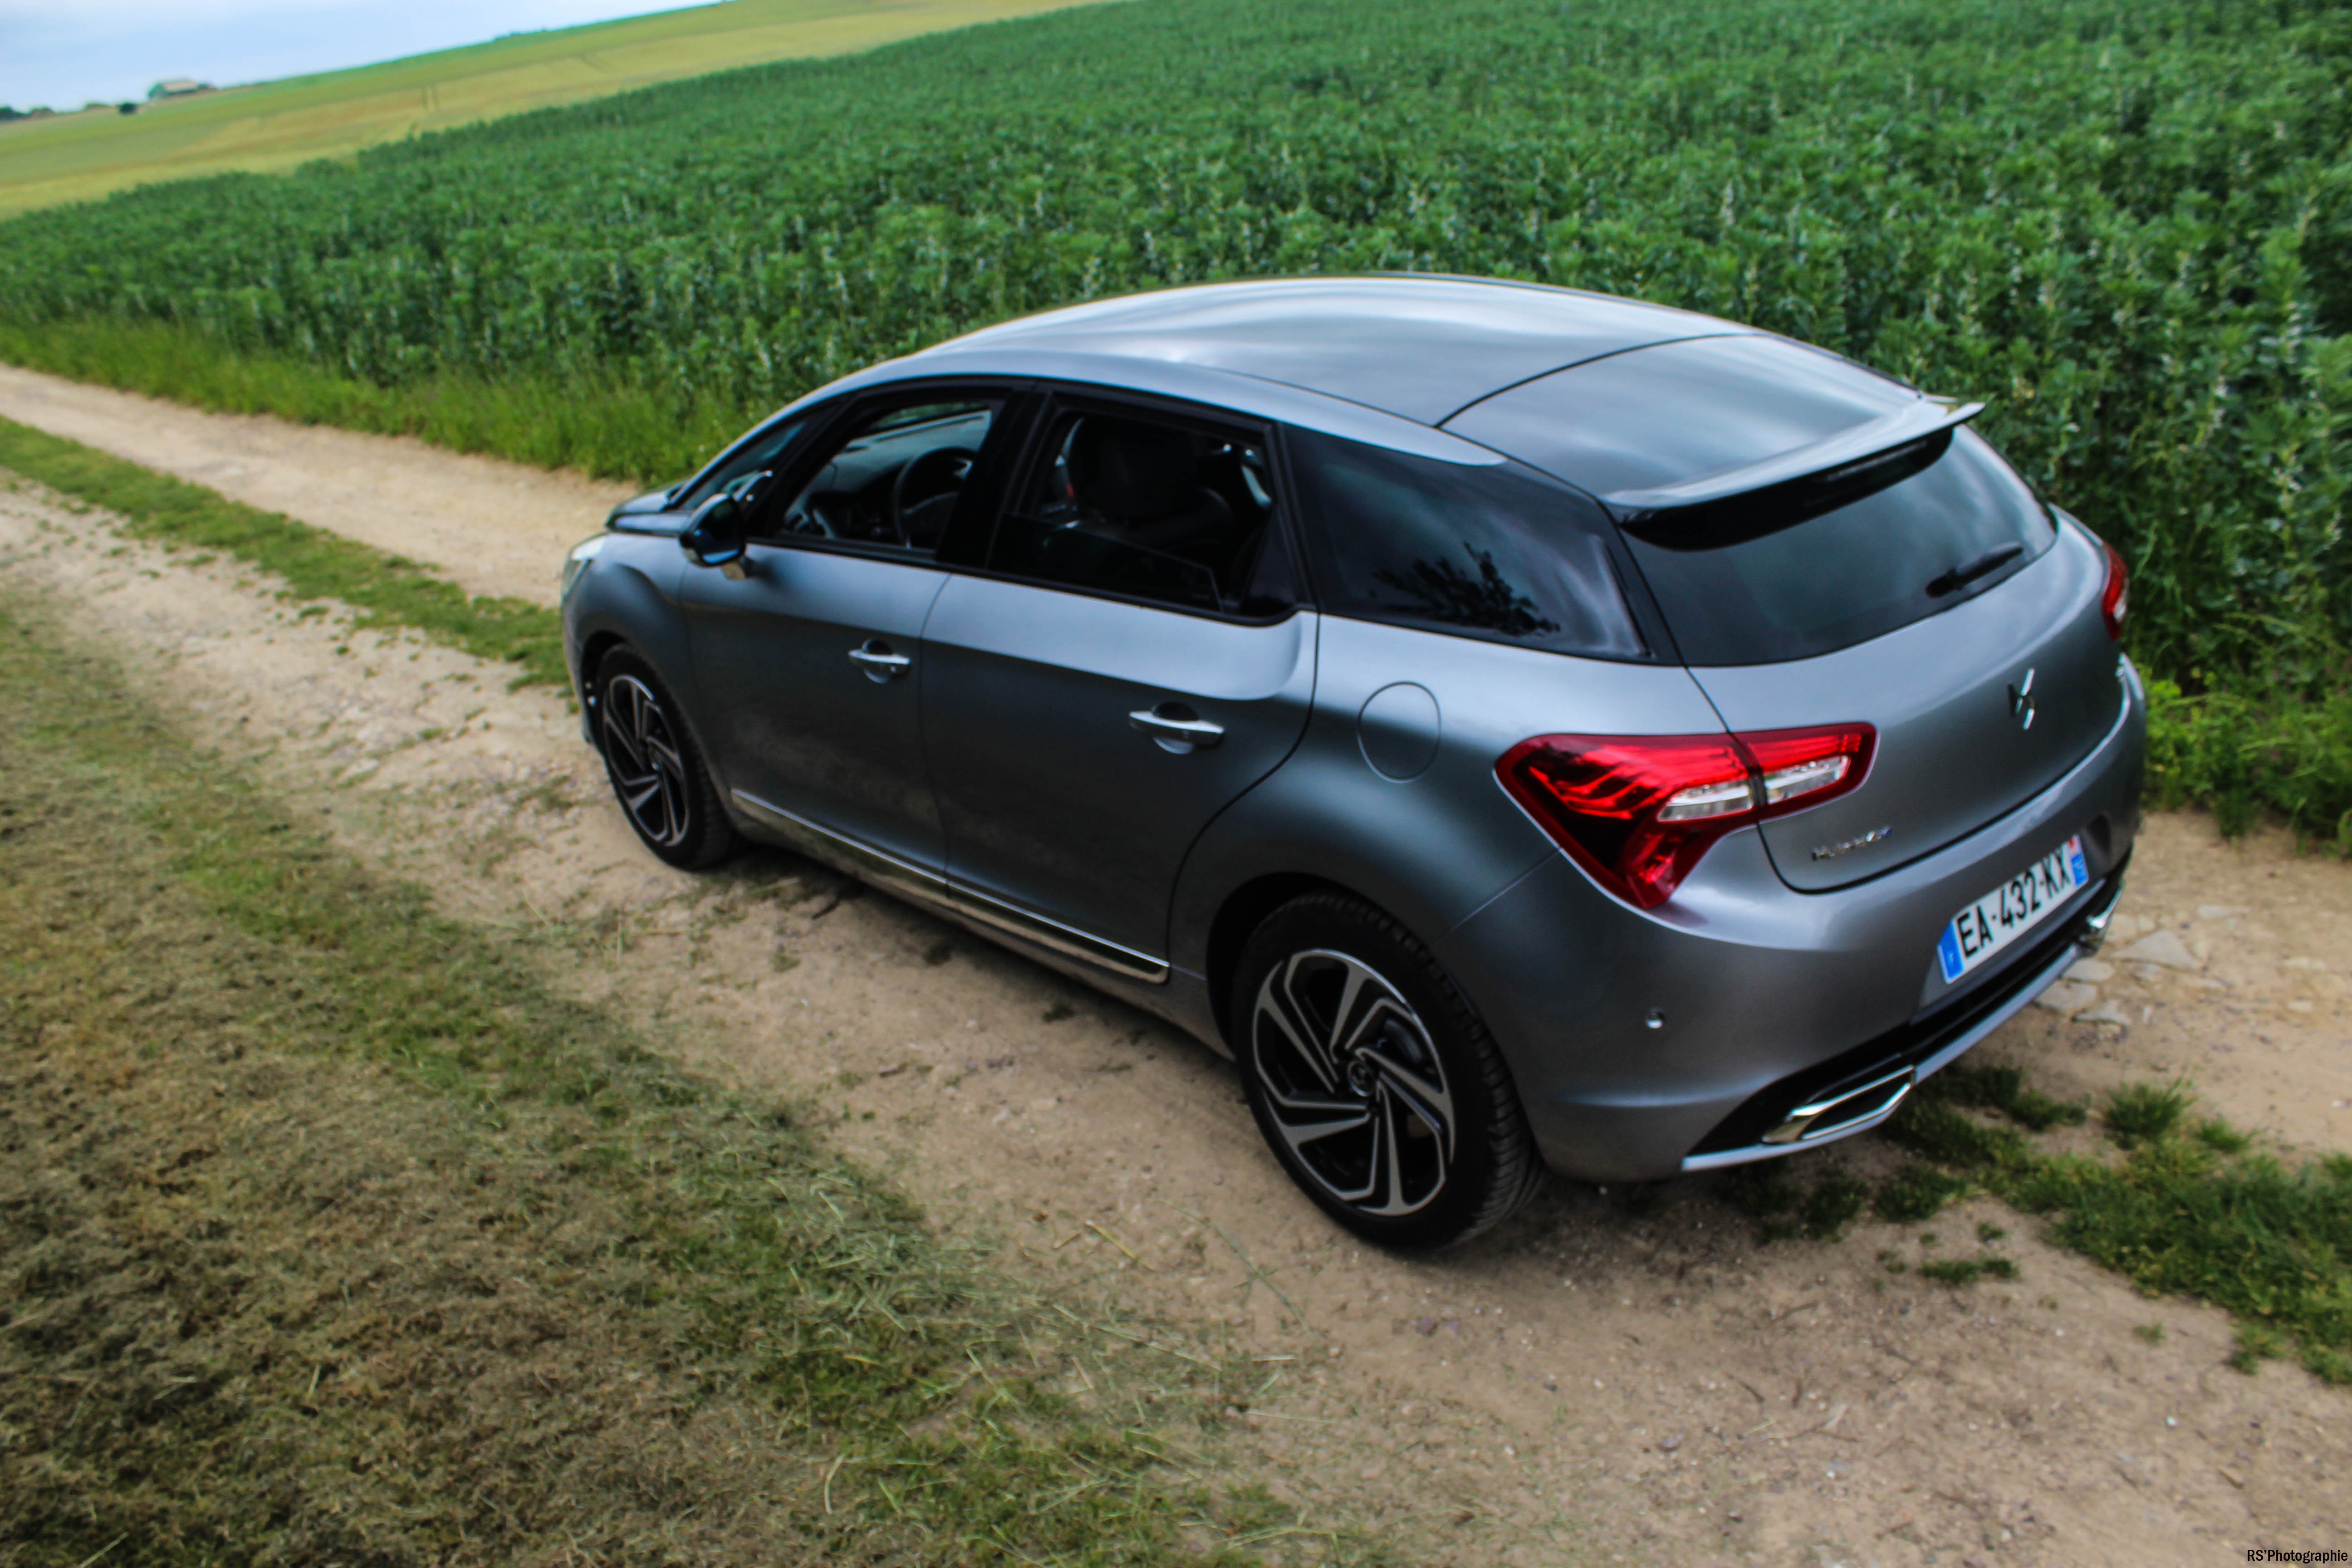 ds5hybrid20-ds5-hybrid4-arriere-rear-Arnaud Demasier-RSPhotographie